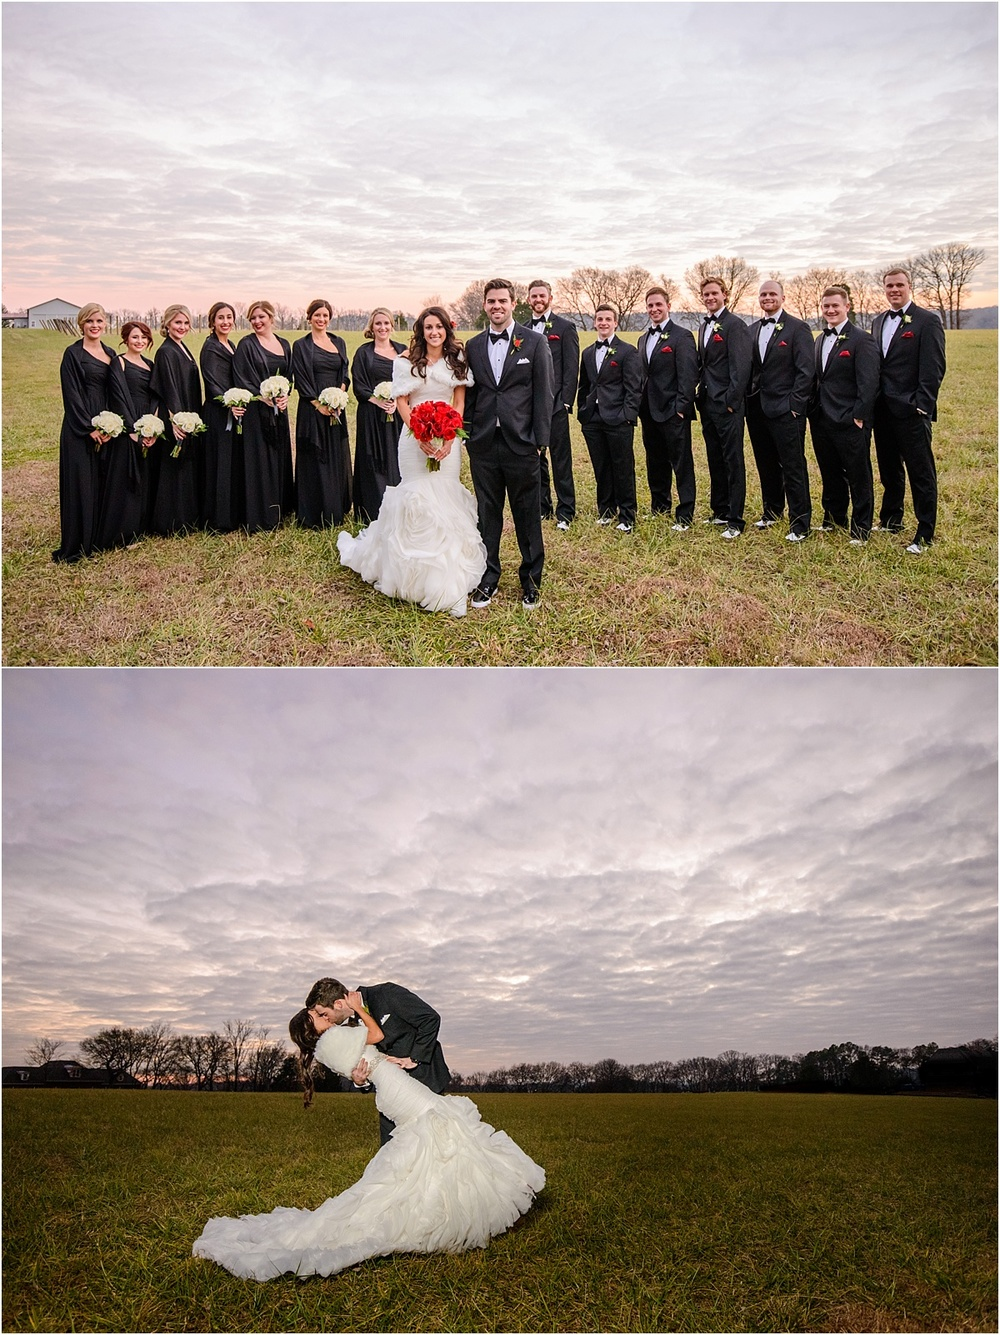 Greg Smit Photography Nashville wedding photographer Mint Springs Farm_0021